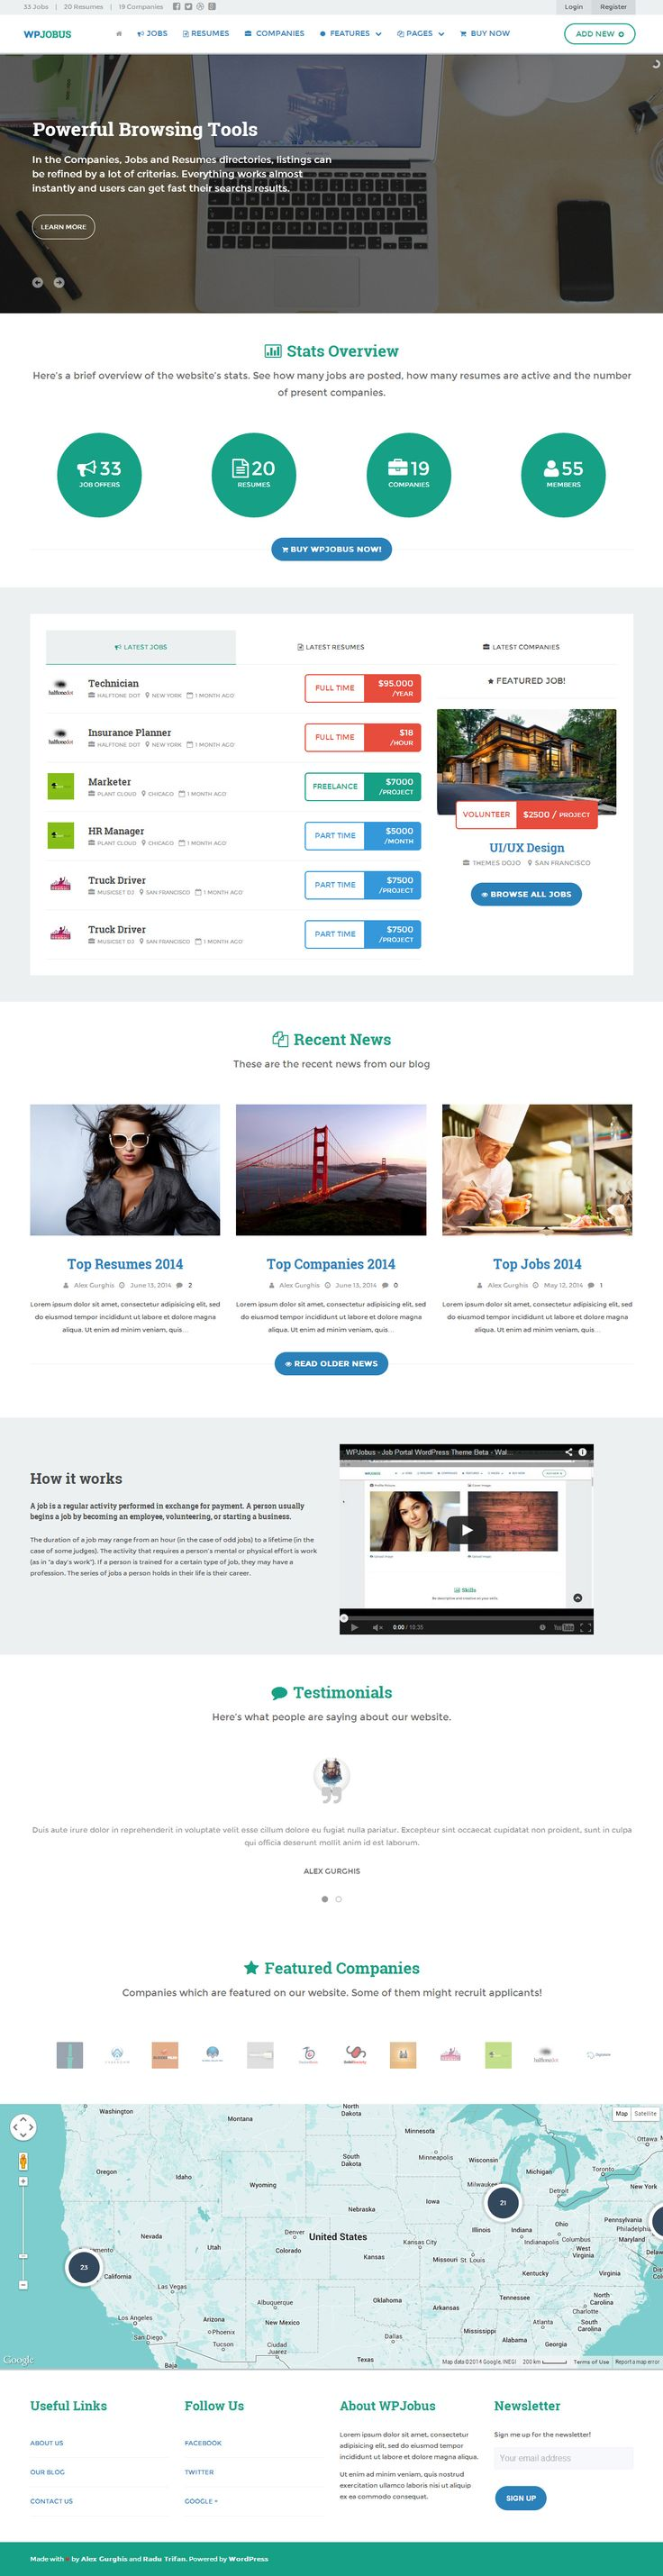 best ideas about job board theme retro design job board theme for wordpress niche job sites in minutes